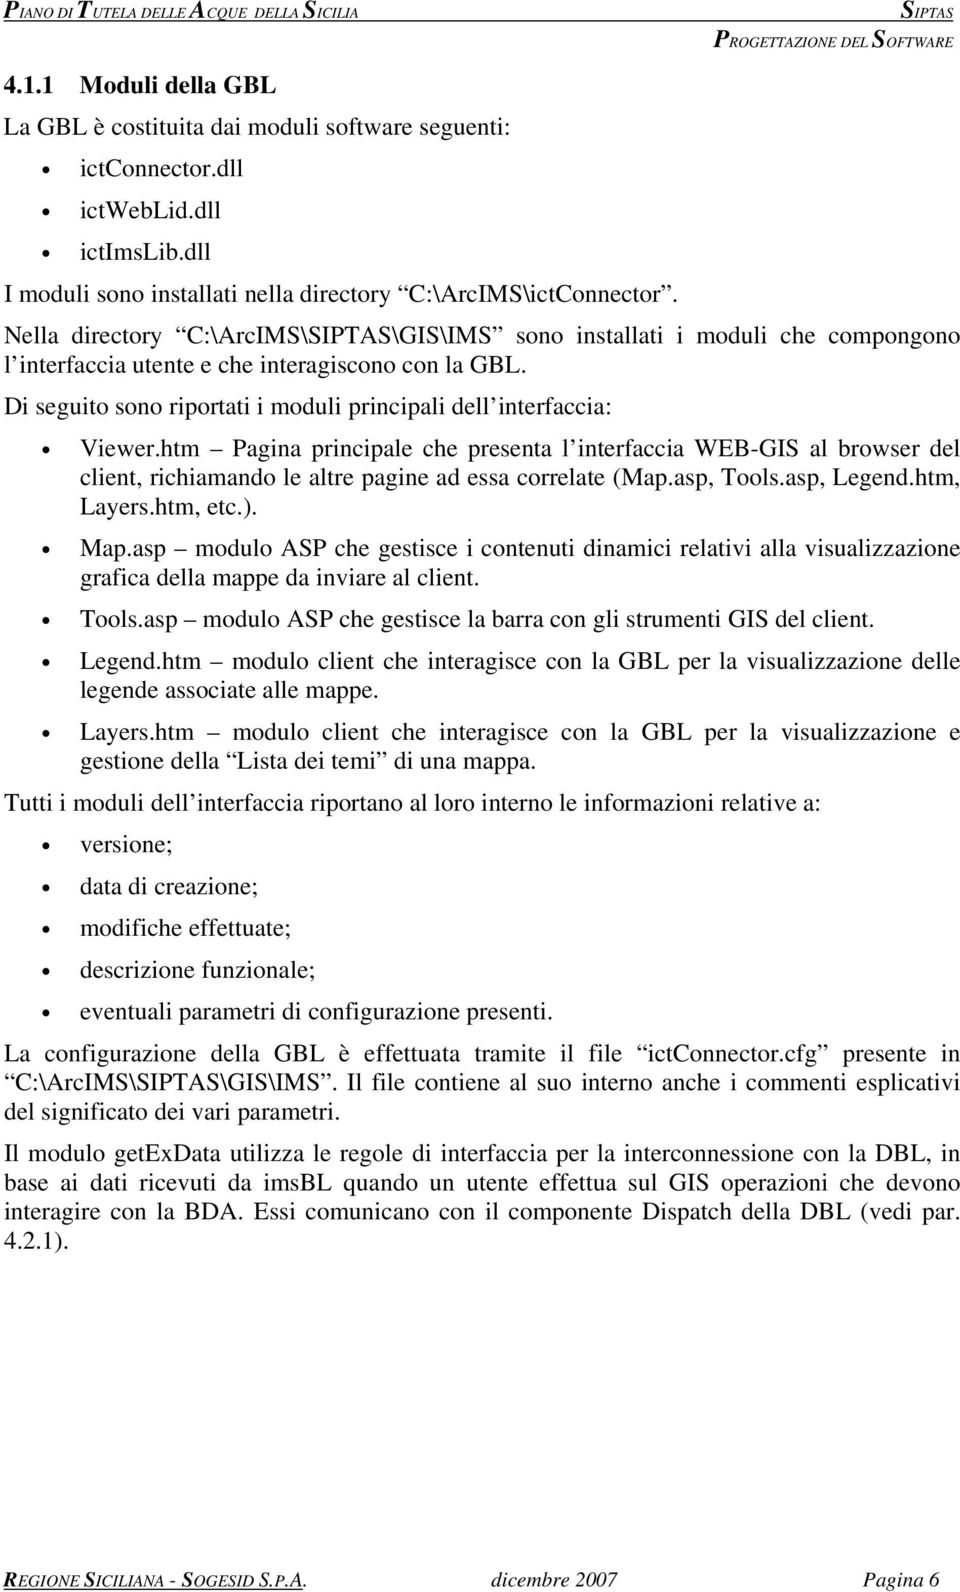 htm Pagina principale che presenta l interfaccia WEB-GIS al browser del client, richiamando le altre pagine ad essa correlate (Map.asp, Tools.asp, Legend.htm, Layers.htm, etc.). Map.